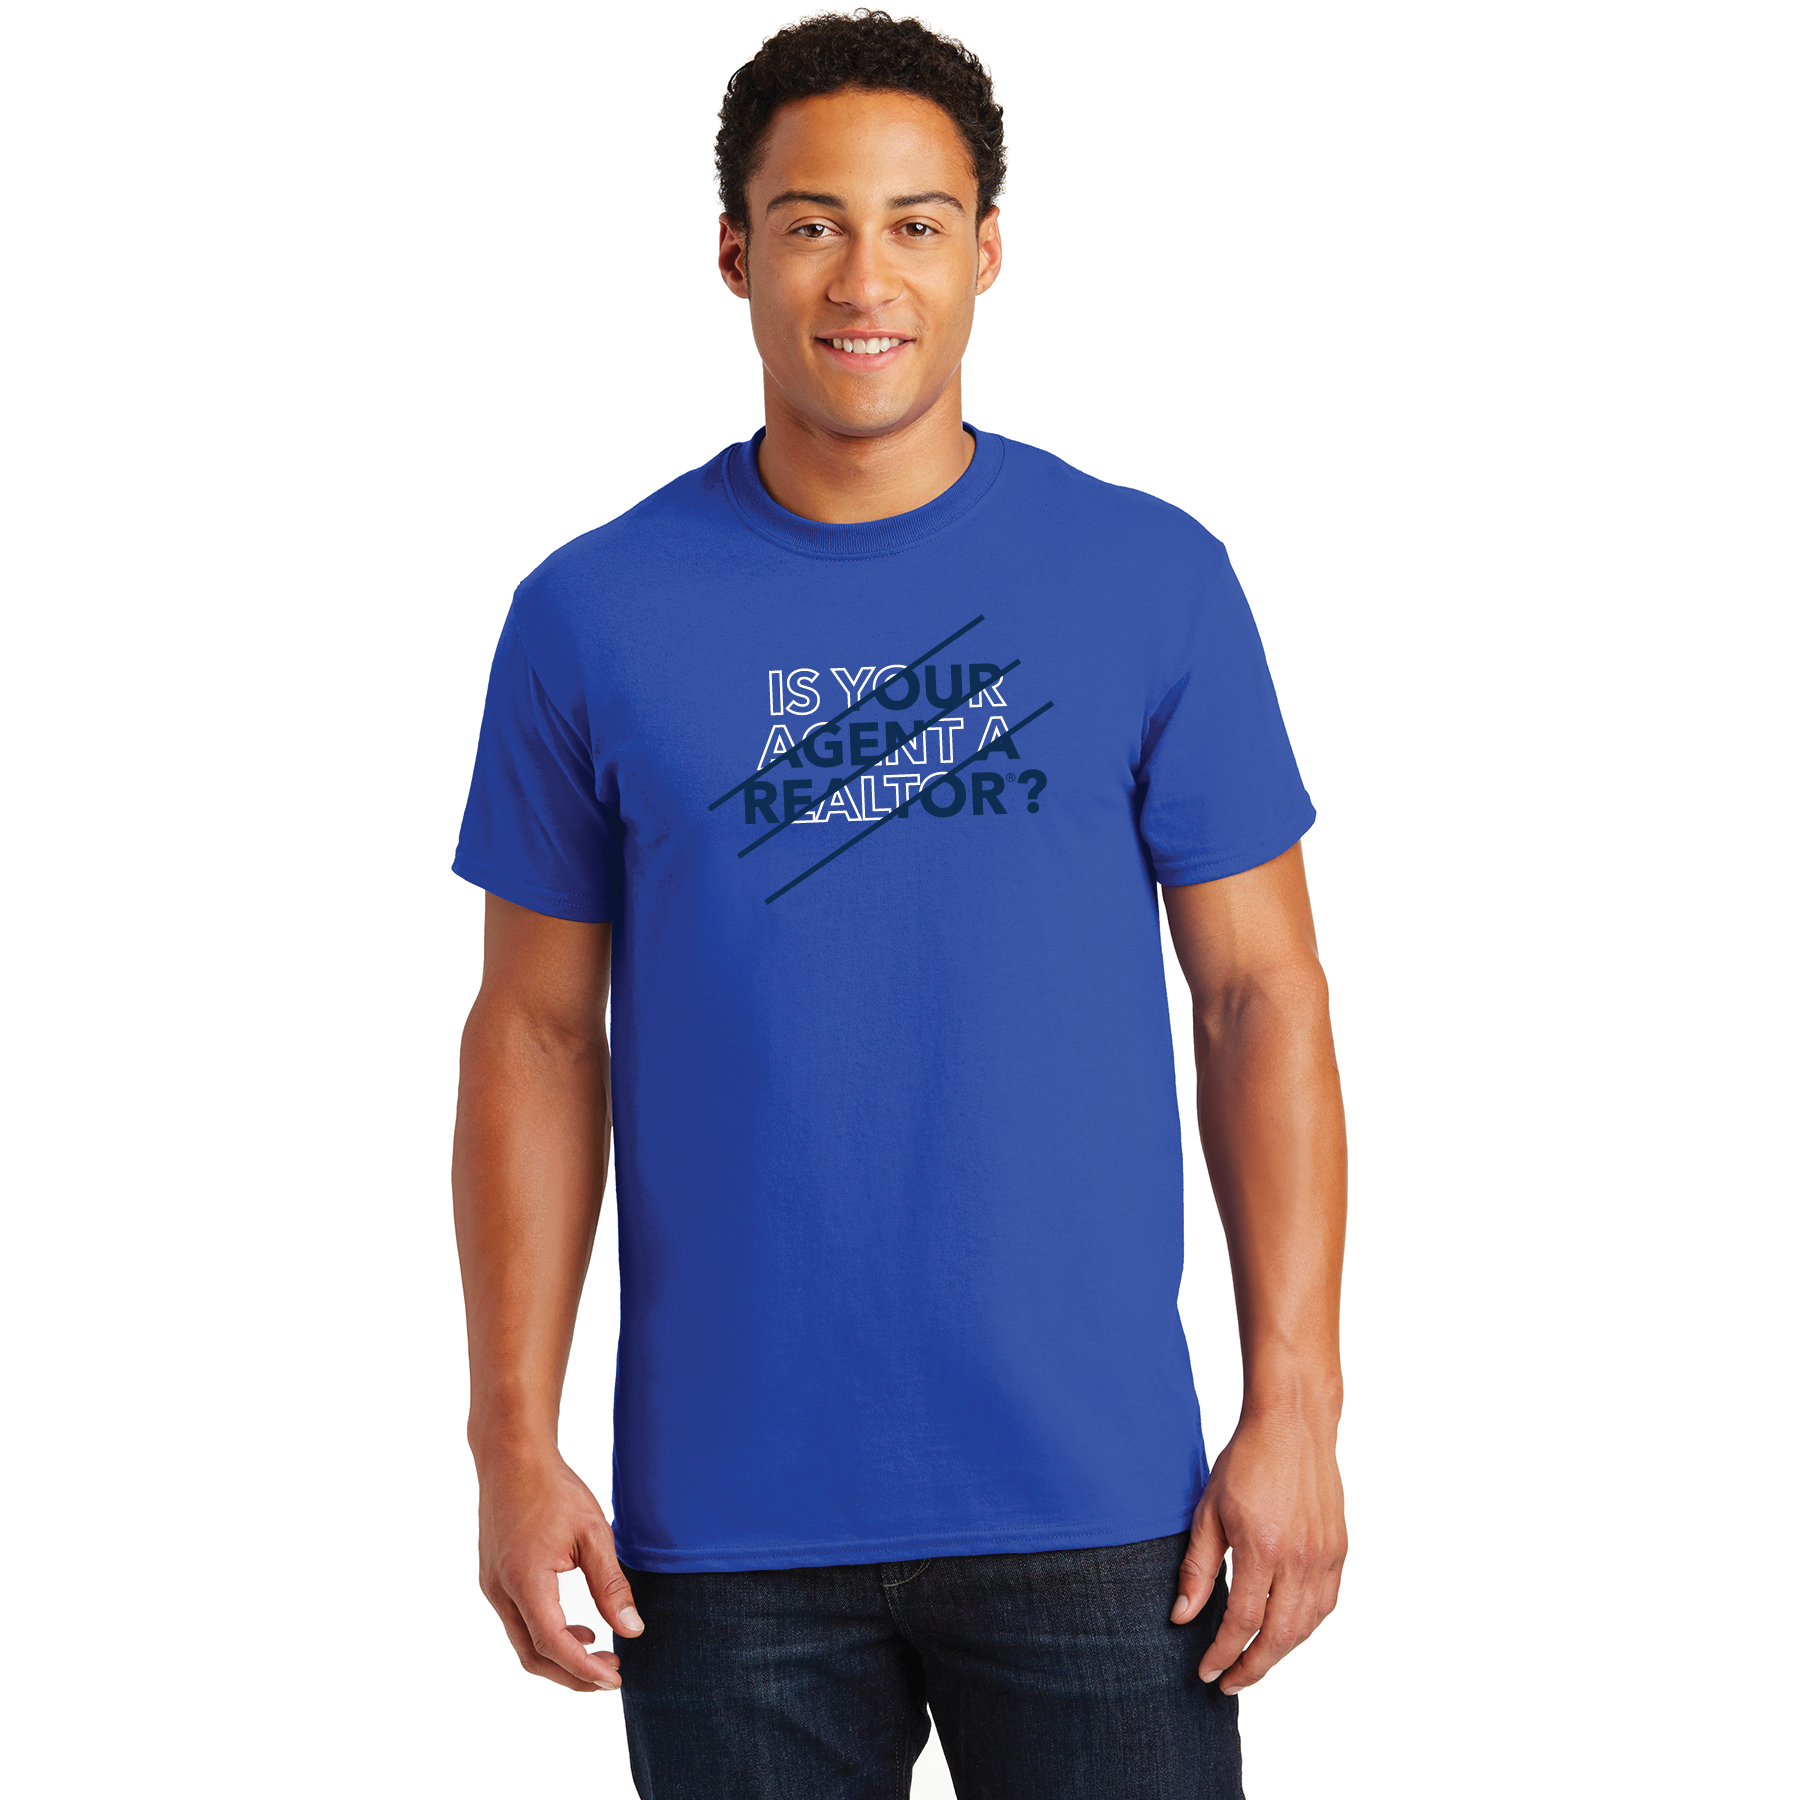 "Royal Blue - Slash Shape ""Is Your Agent a REALTOR®"" Tee Shirt TRSFR,twwr,ThatsWhoWeR,That's,TWWR,ThatWho,That'sWho,Twwr,Thats,Whos,We,Ares,Tees,T-shirt,Tee,Casual,Values,Tees,NewEra,Longs,Sleeves"